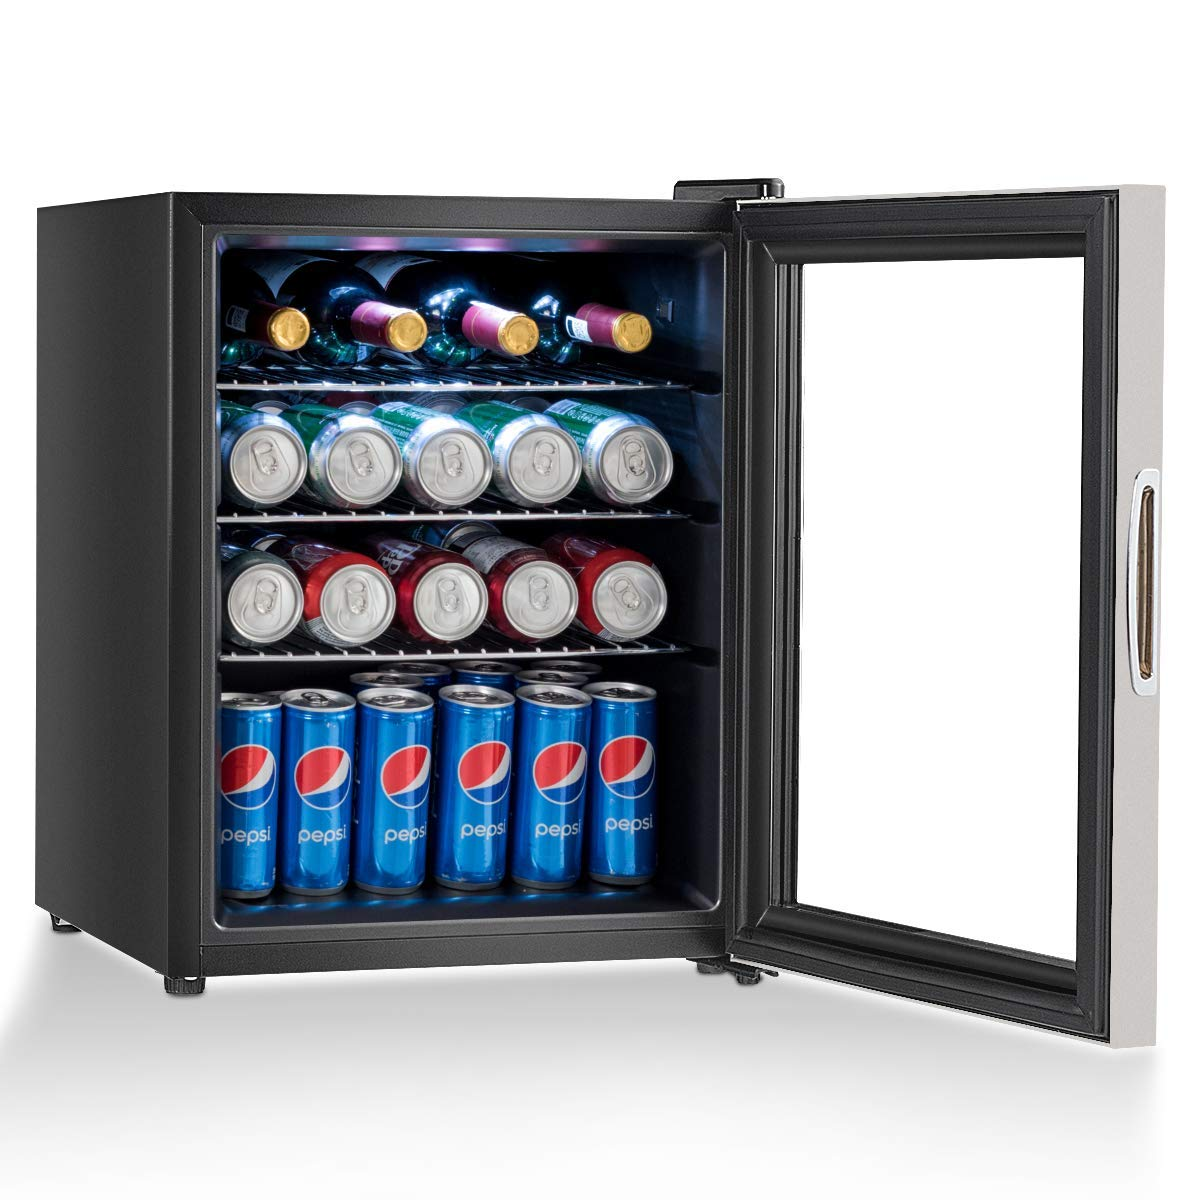 COSTWAY Beverage Refrigerator and Cooler, 52 Can Mini Fridge with Glass Door for Soda Beer or Wine Small Drink Dispenser Machine for Office or Bar 17 x 17.5 x 22